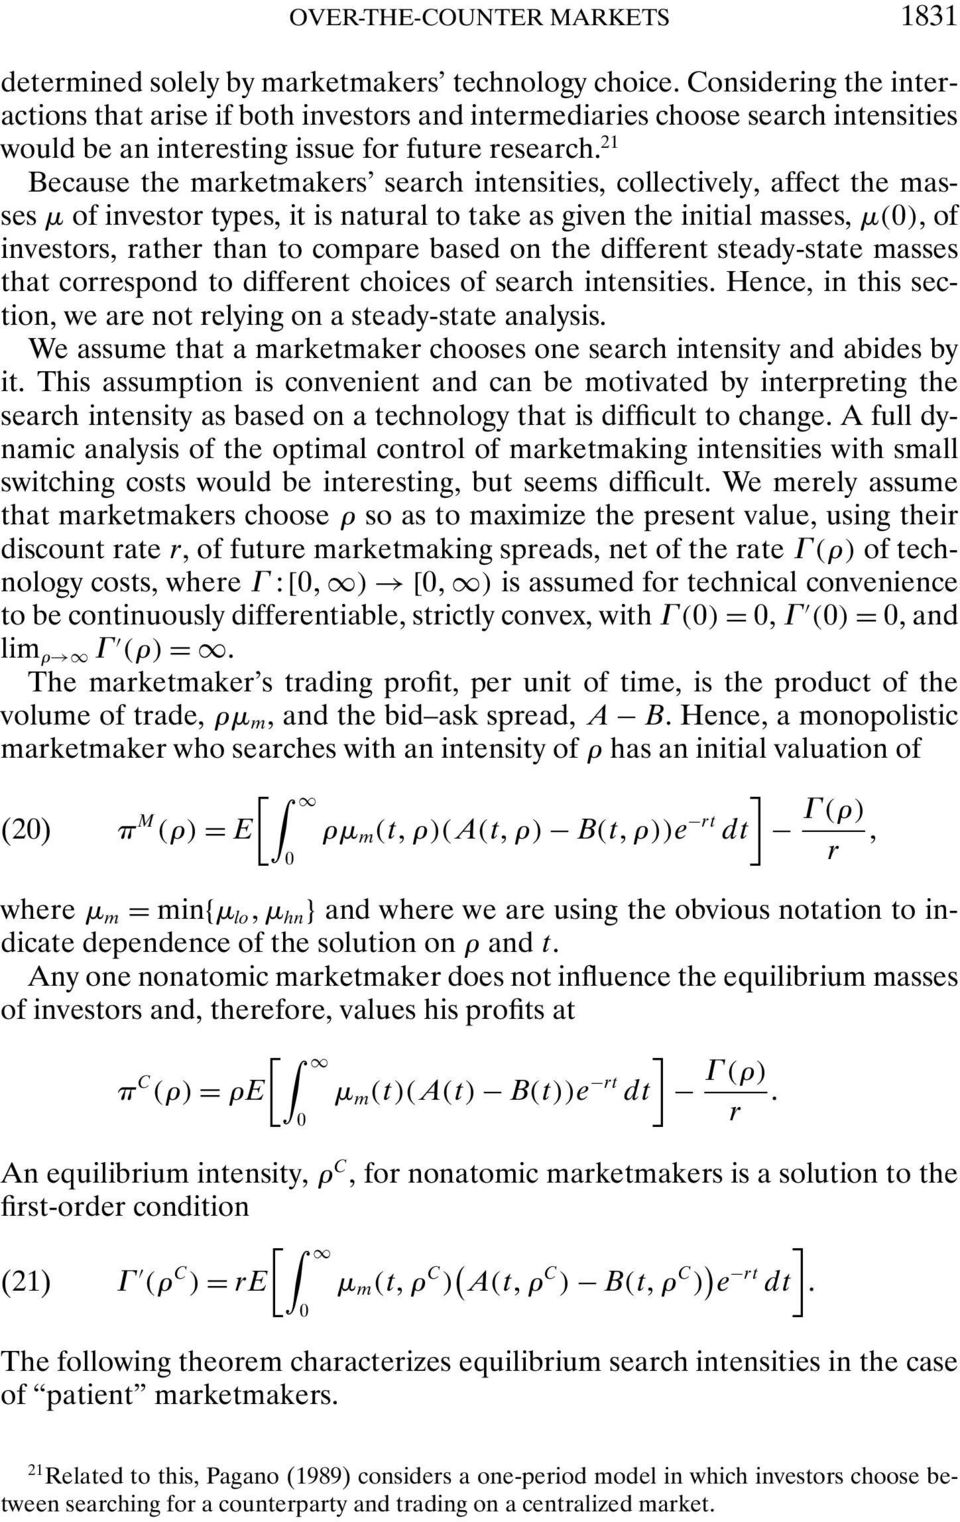 21 Because the marketmakers search intensities, collectively, affect the masses µ of investor types, it is natural to take as given the initial masses, µ(0), of investors, rather than to compare